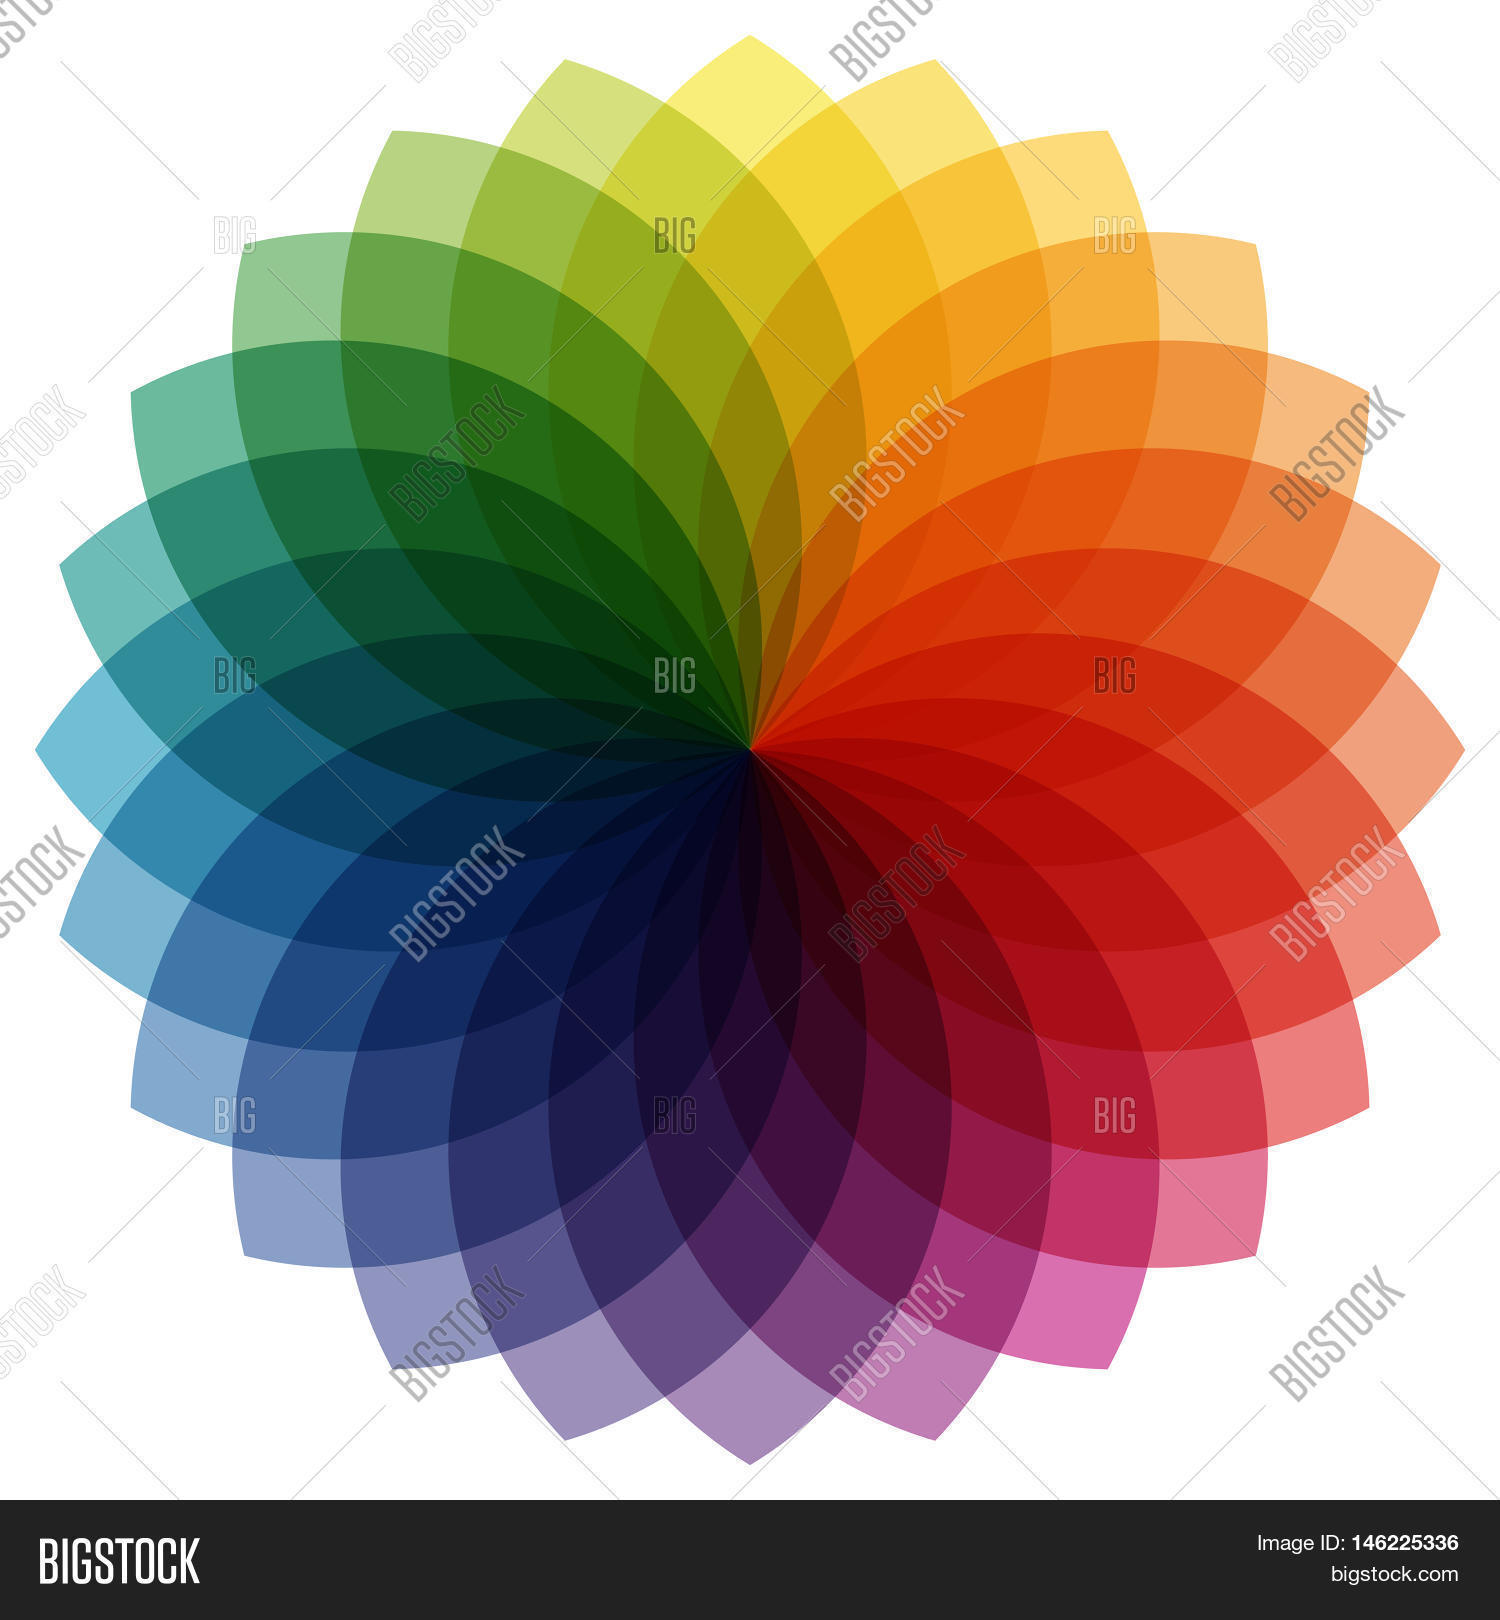 Color Wheel Overlaying Colors Vector & Photo | Bigstock